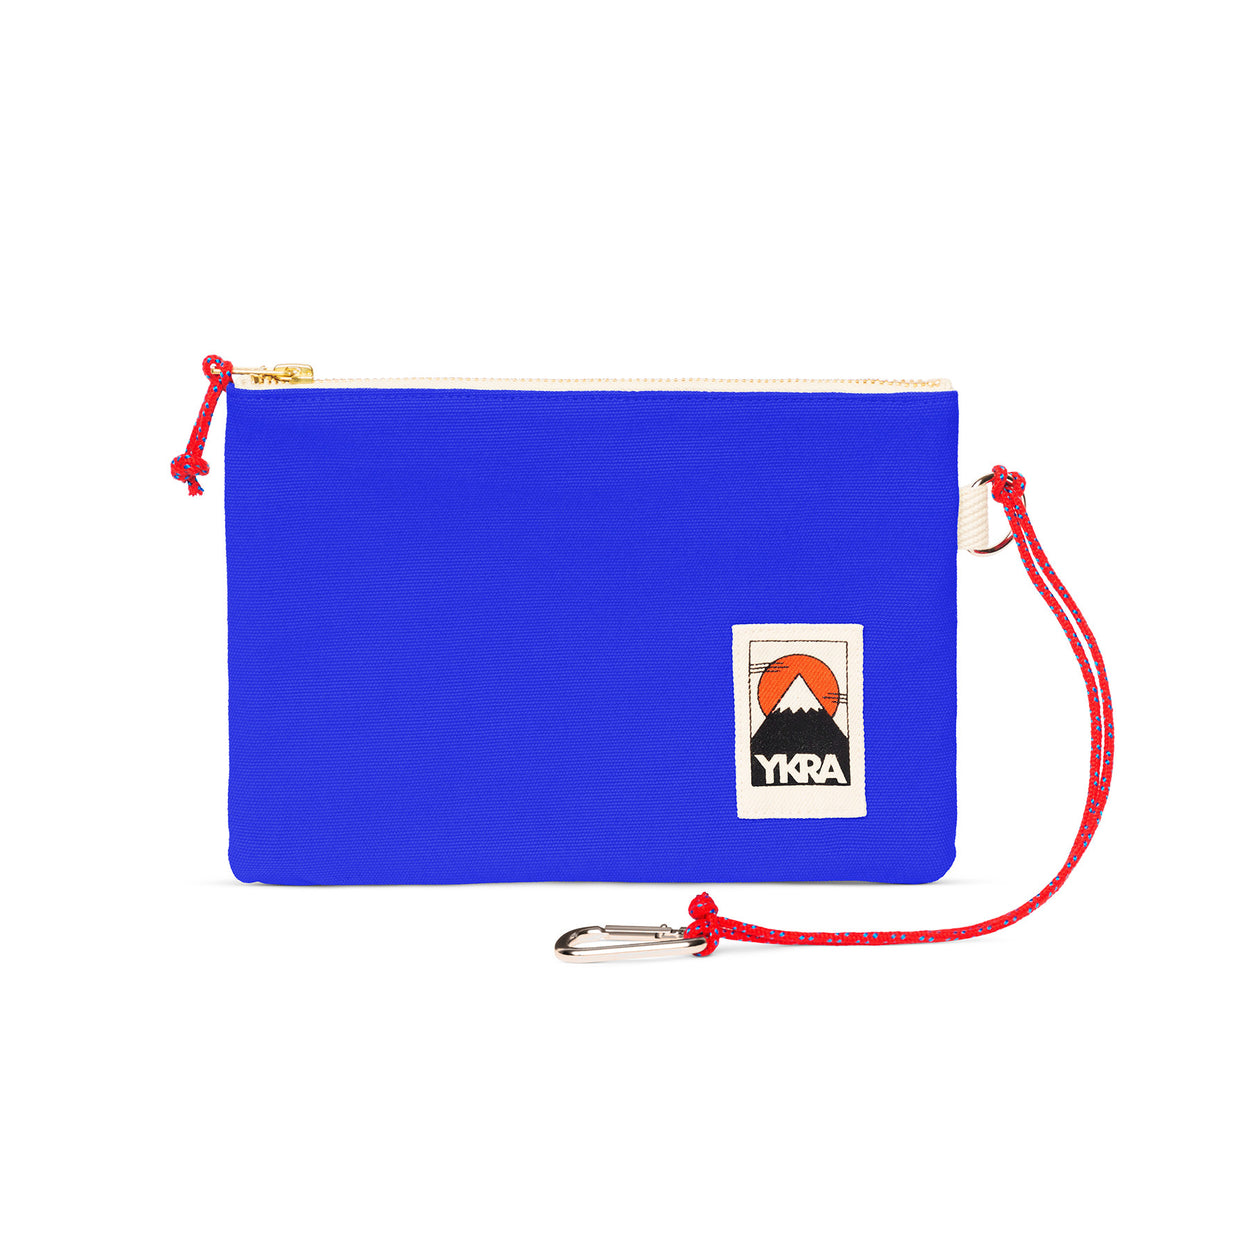 YKRA POUCH BLUE